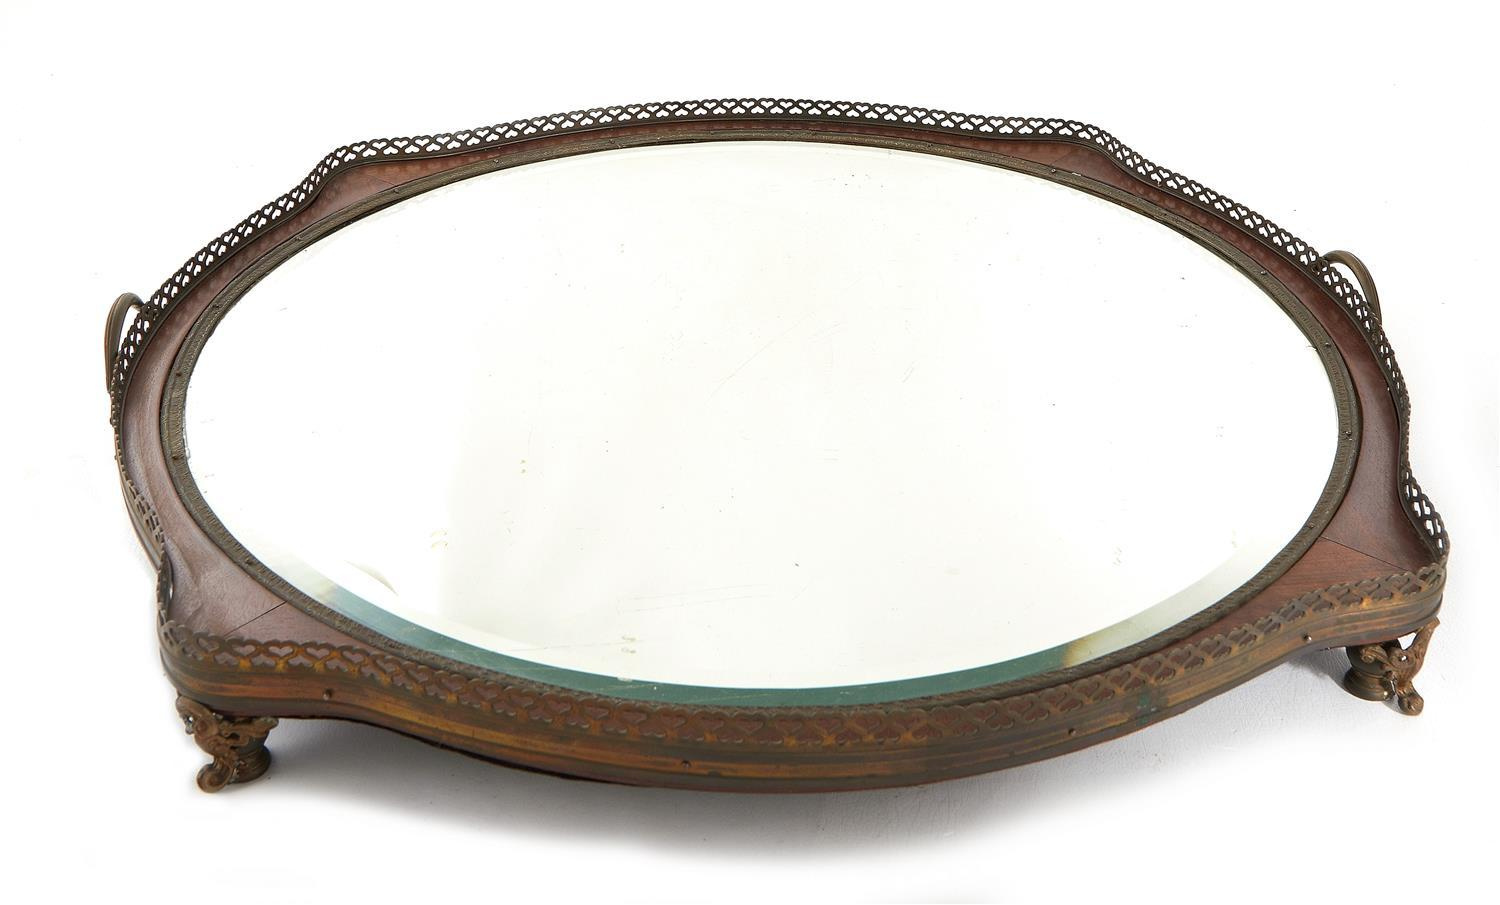 French metal-mounted and parquetry mirrored plateau